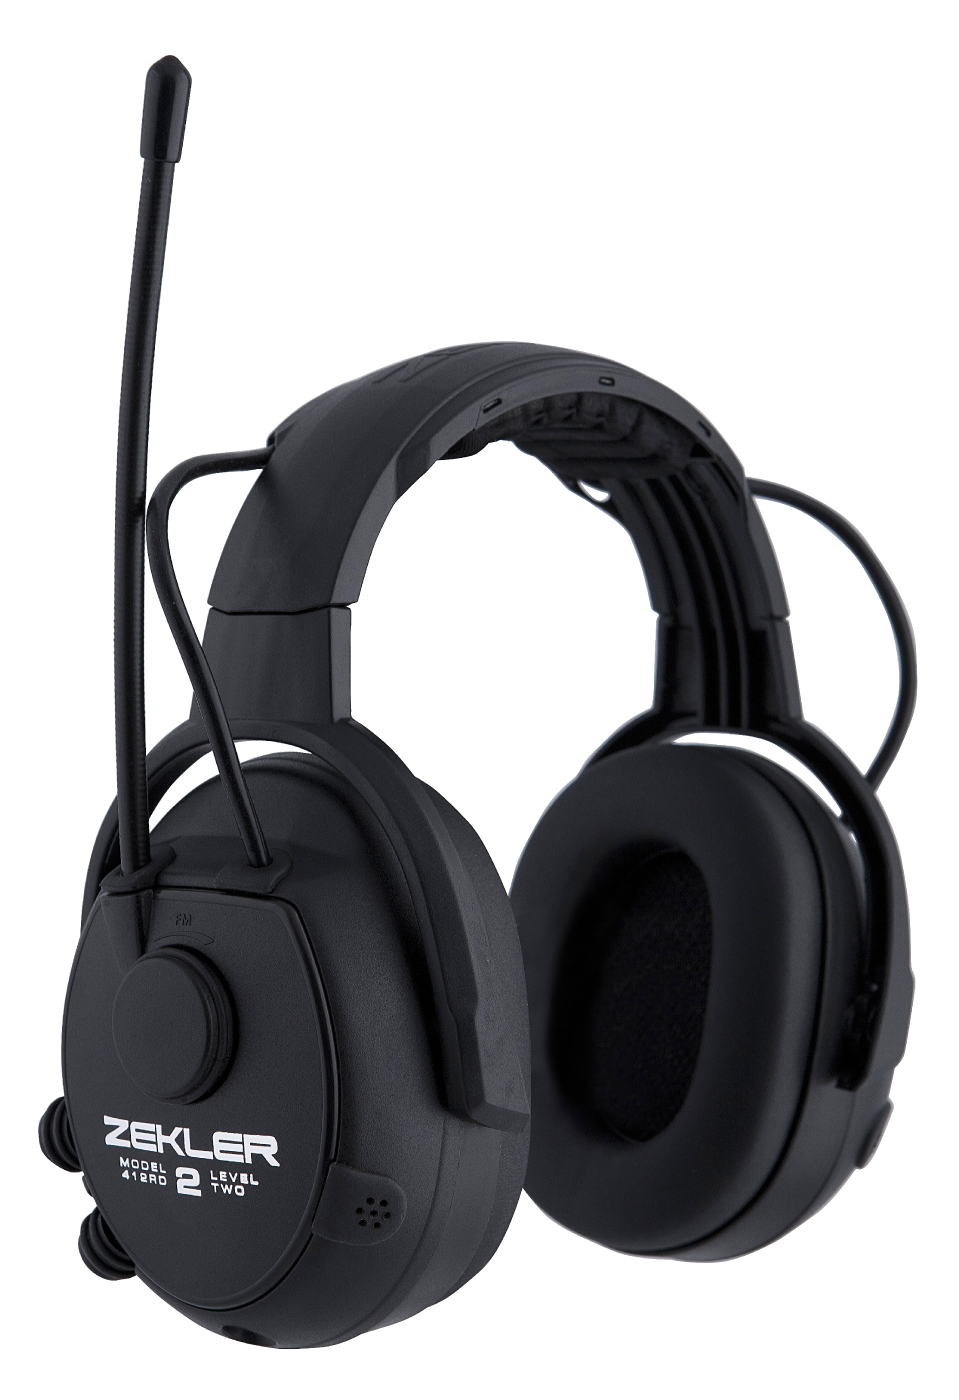 Hearing protection ZEKLER 412RD